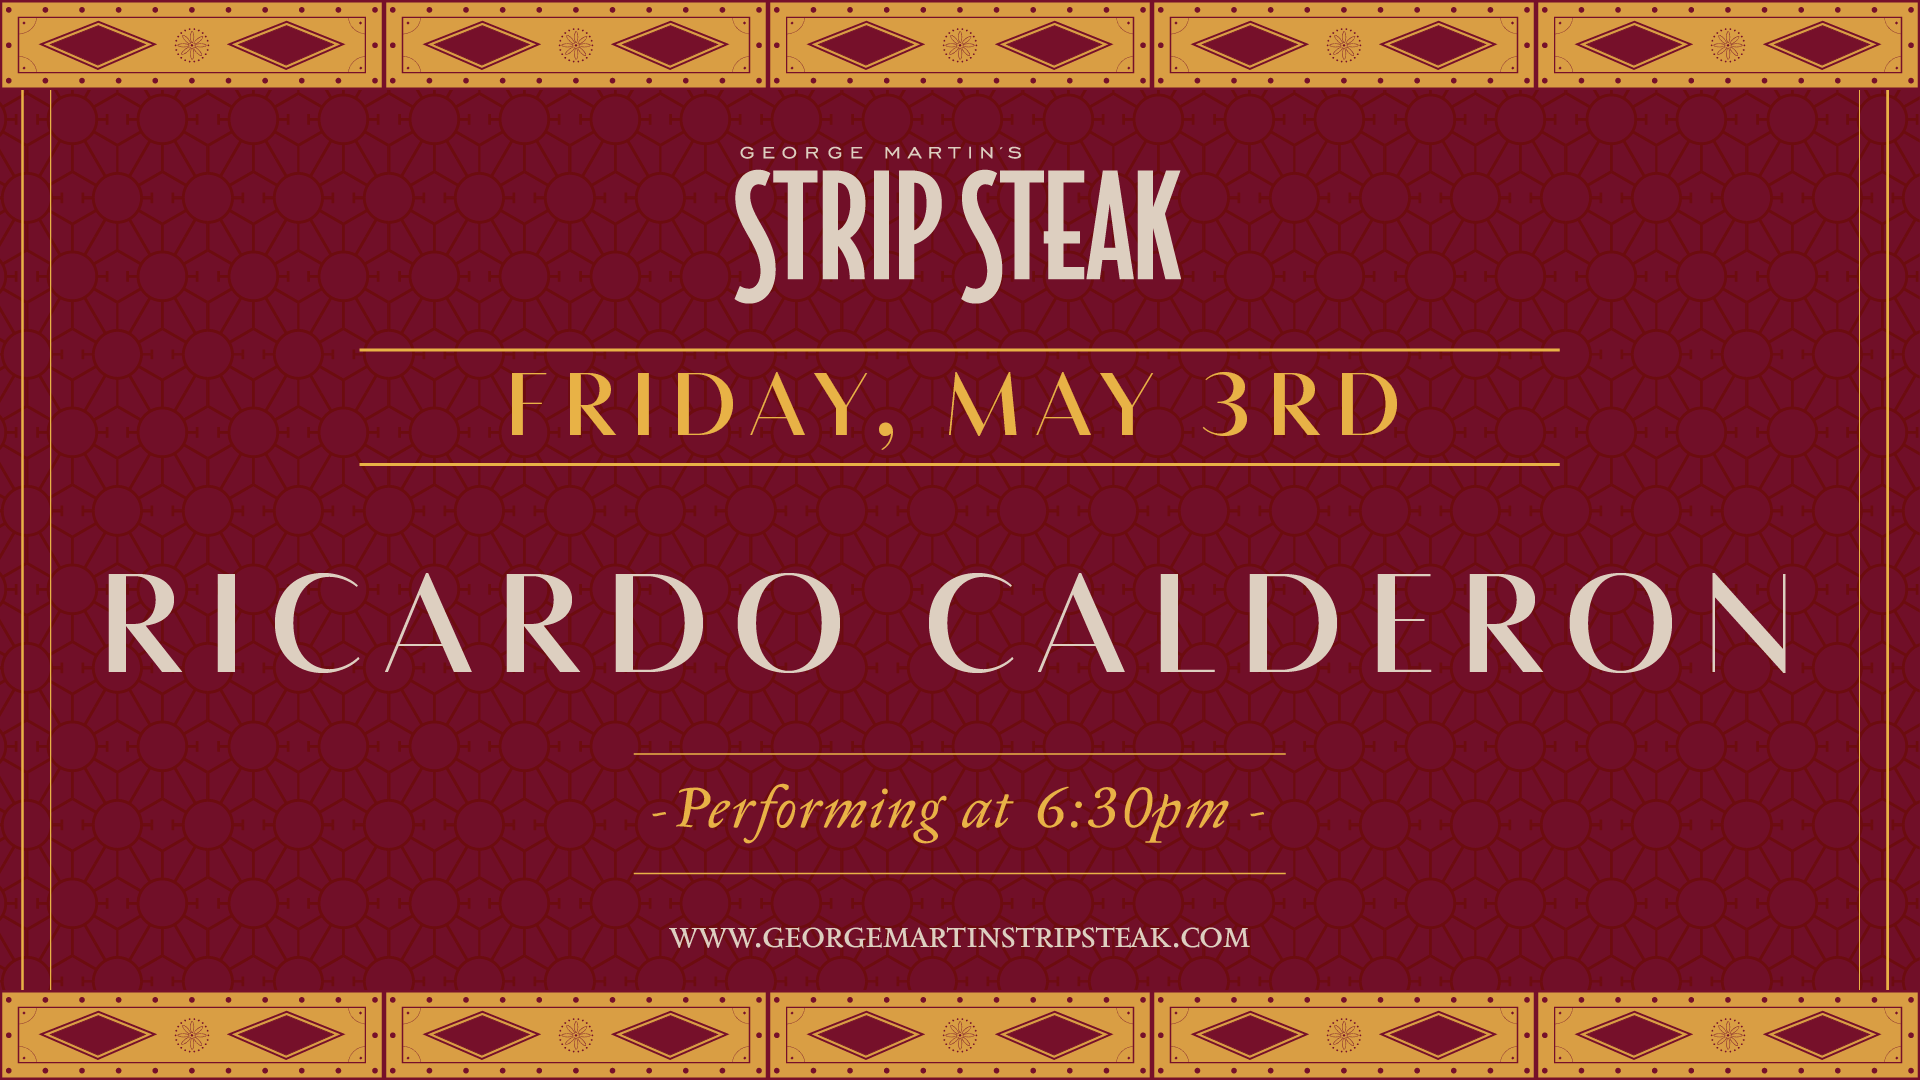 Flyer for Live Music with Ricardo Calderon at 6:30pm